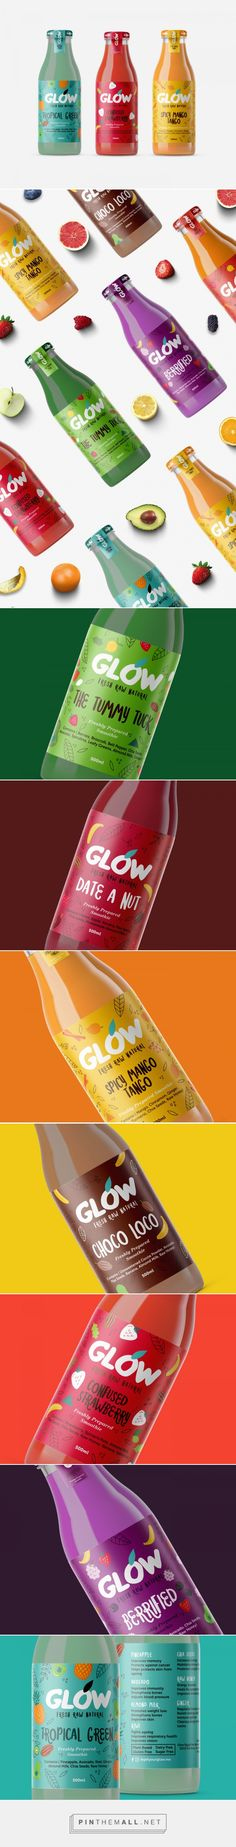 Glow - Packaging of the World - Creative Package Design Gallery - http://www.packagingoftheworld.com/2017/08/glow.html